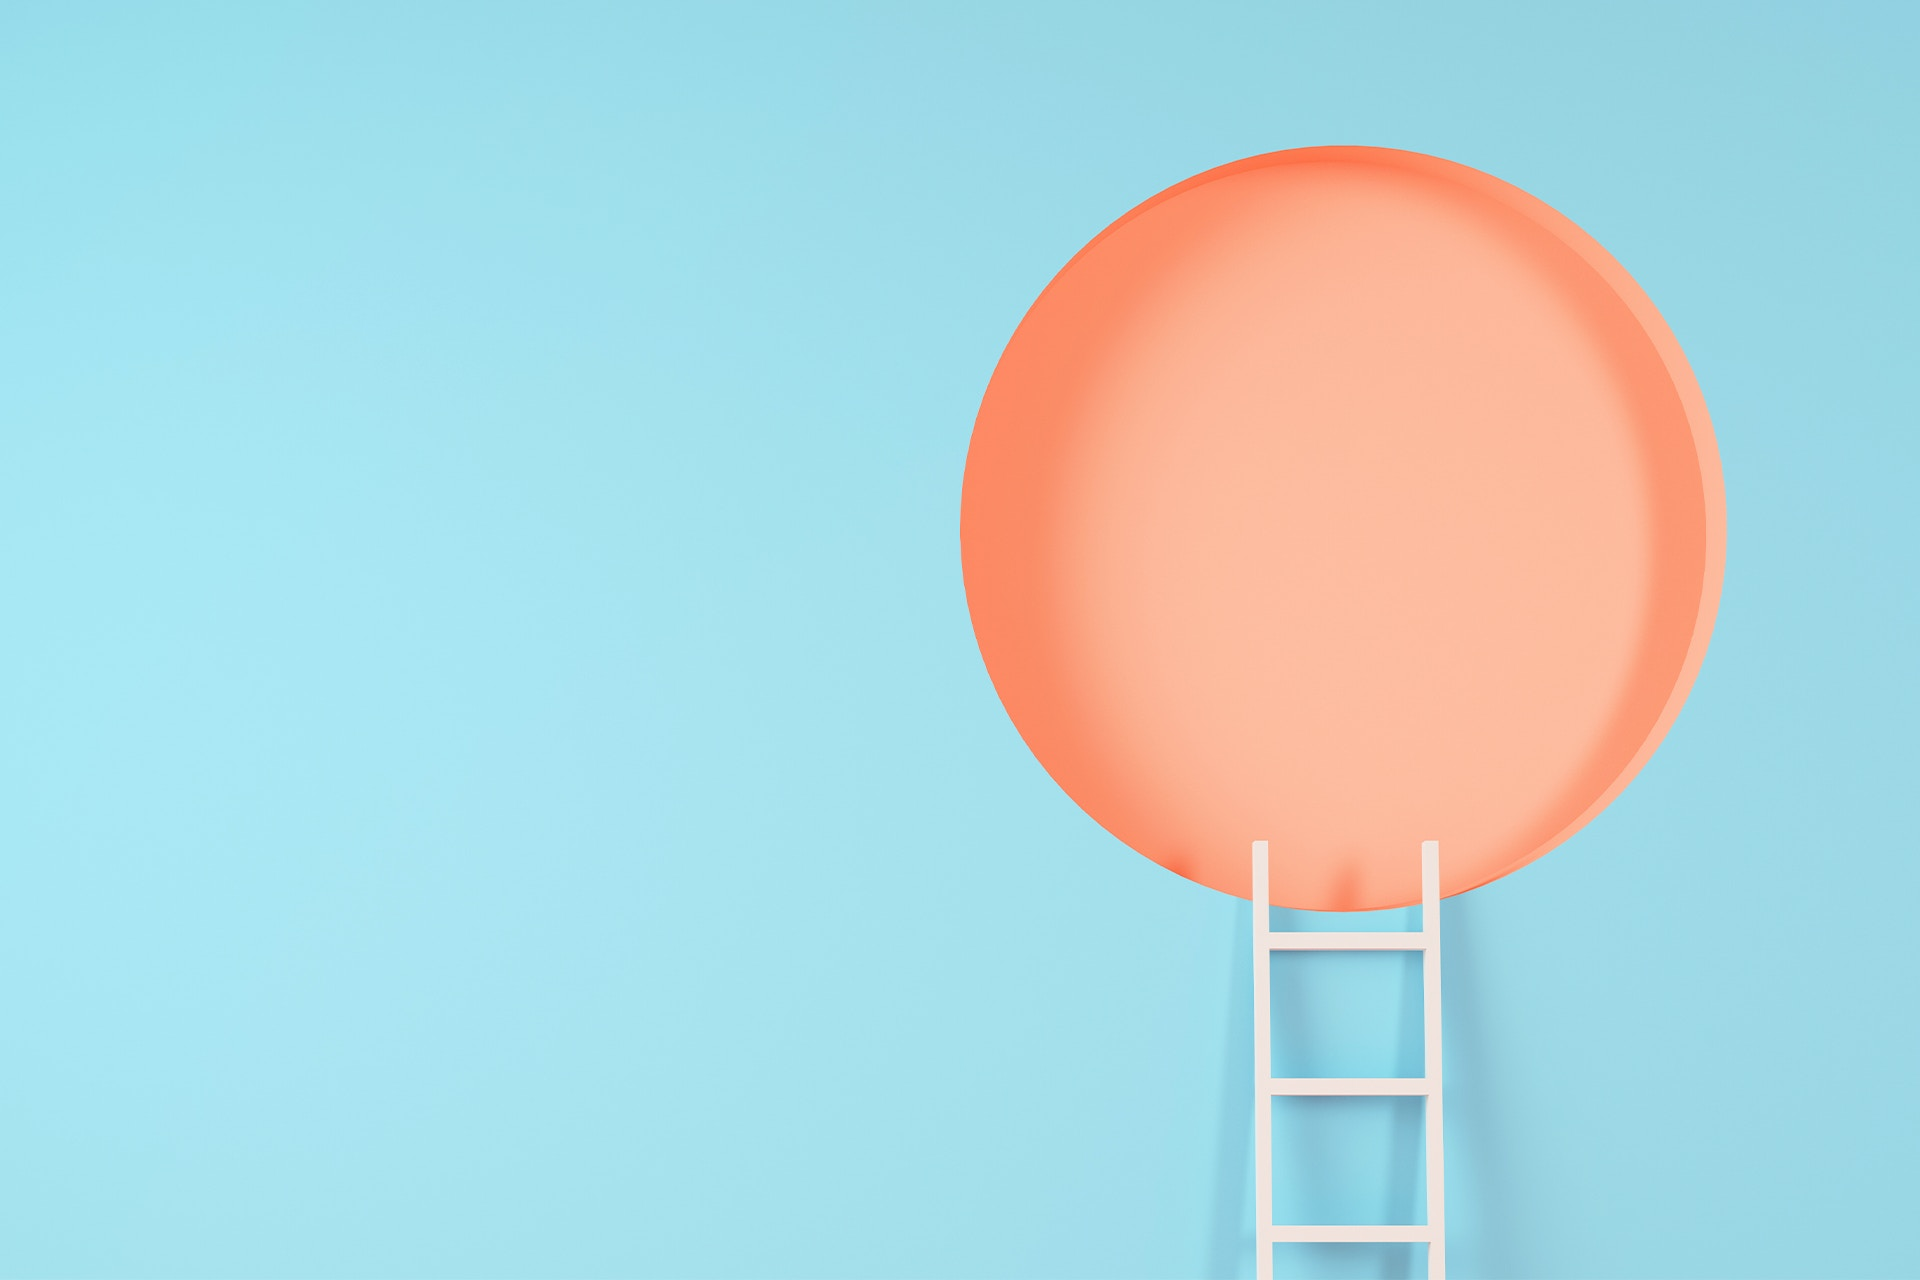 A white ladder placed against a light blue wall that is leading up to a window that is a giant orange circle. The abstract image feels aspirational, like the idea of a positive employer brand image that employees and companies strive for